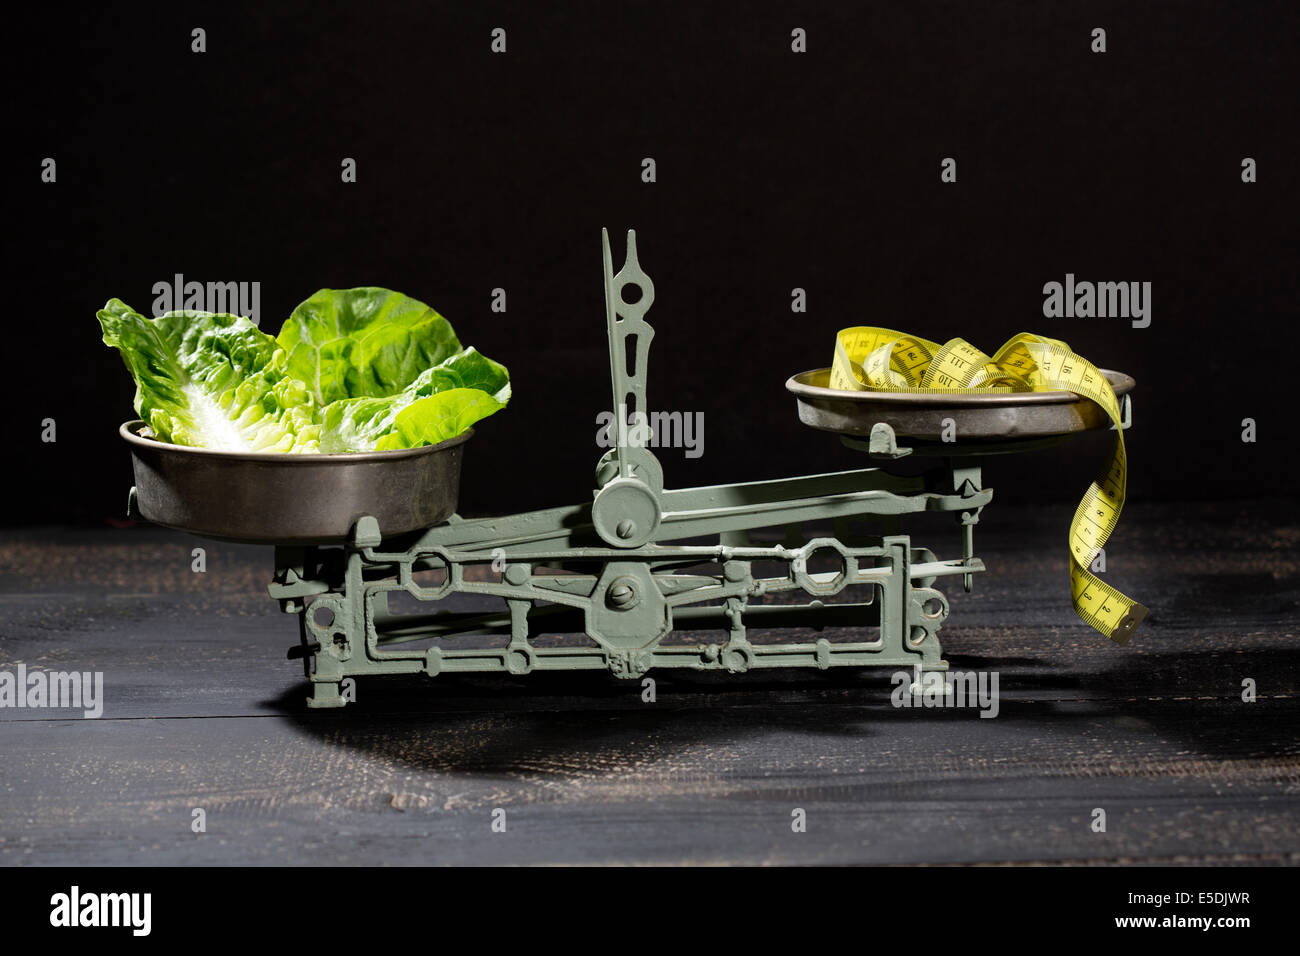 Lettuce leaves and tape measure on scale - Stock Image